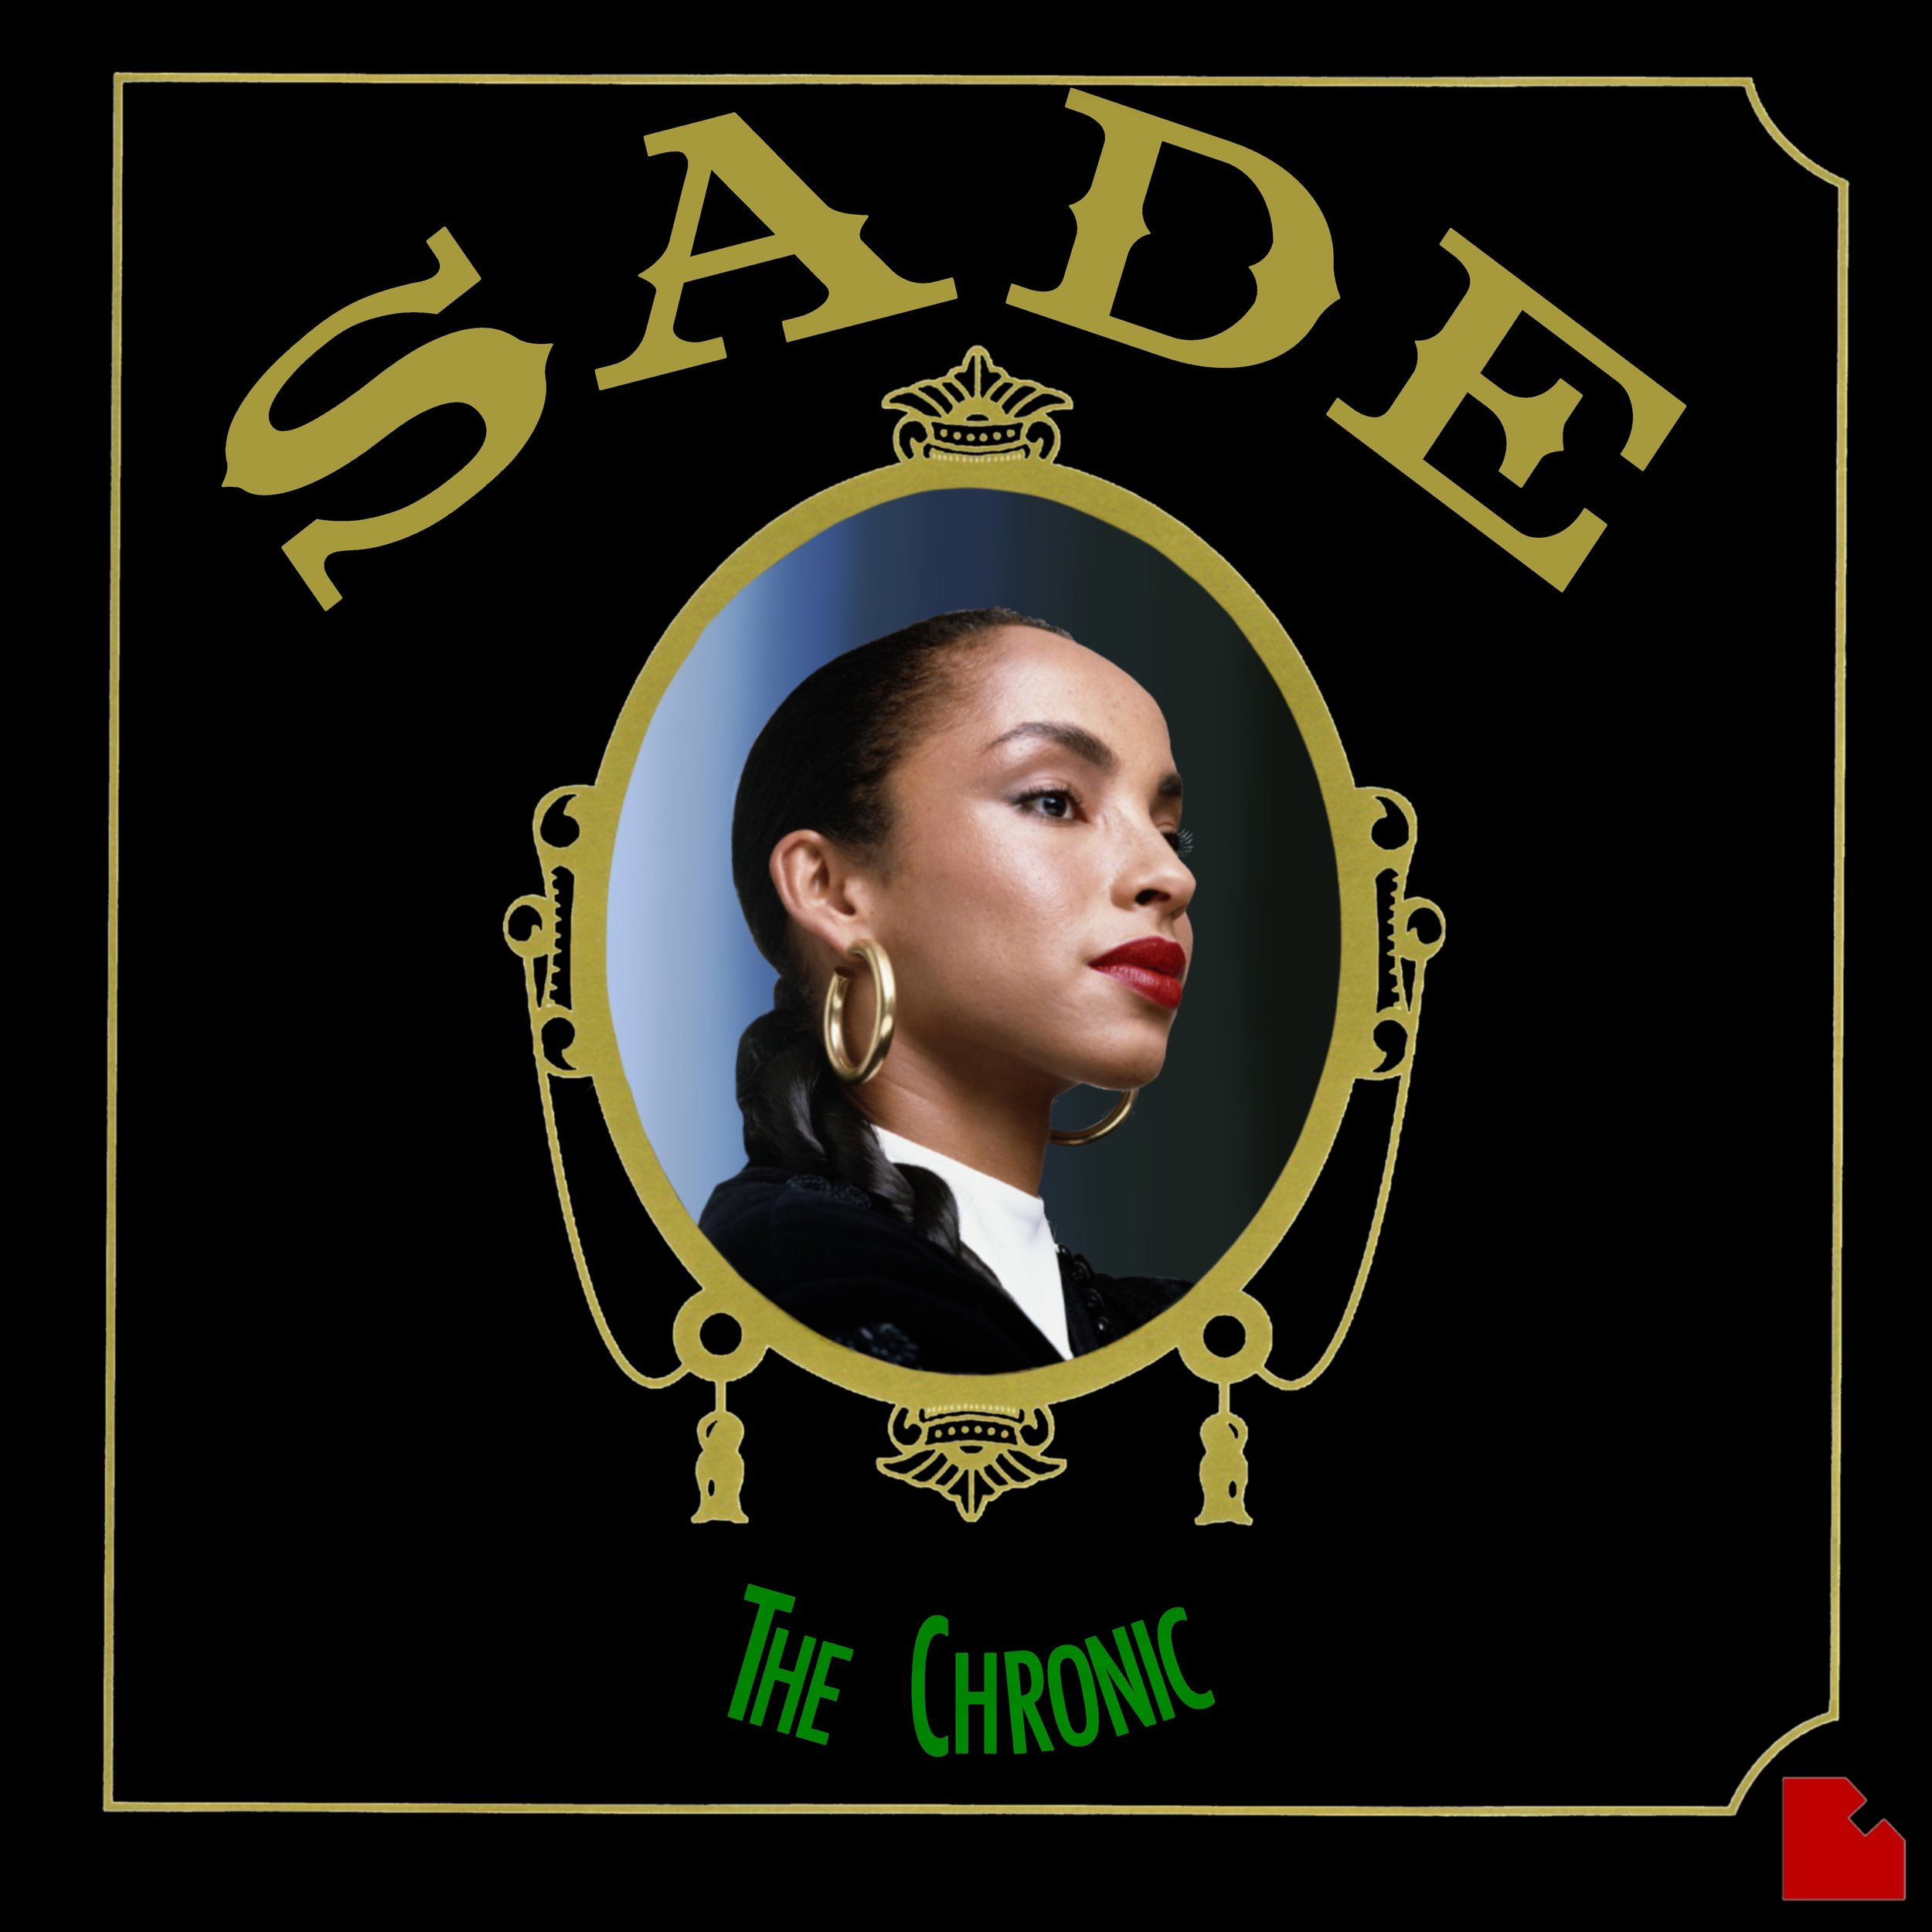 S A D E , The Chronic - This collection is currently sold out.